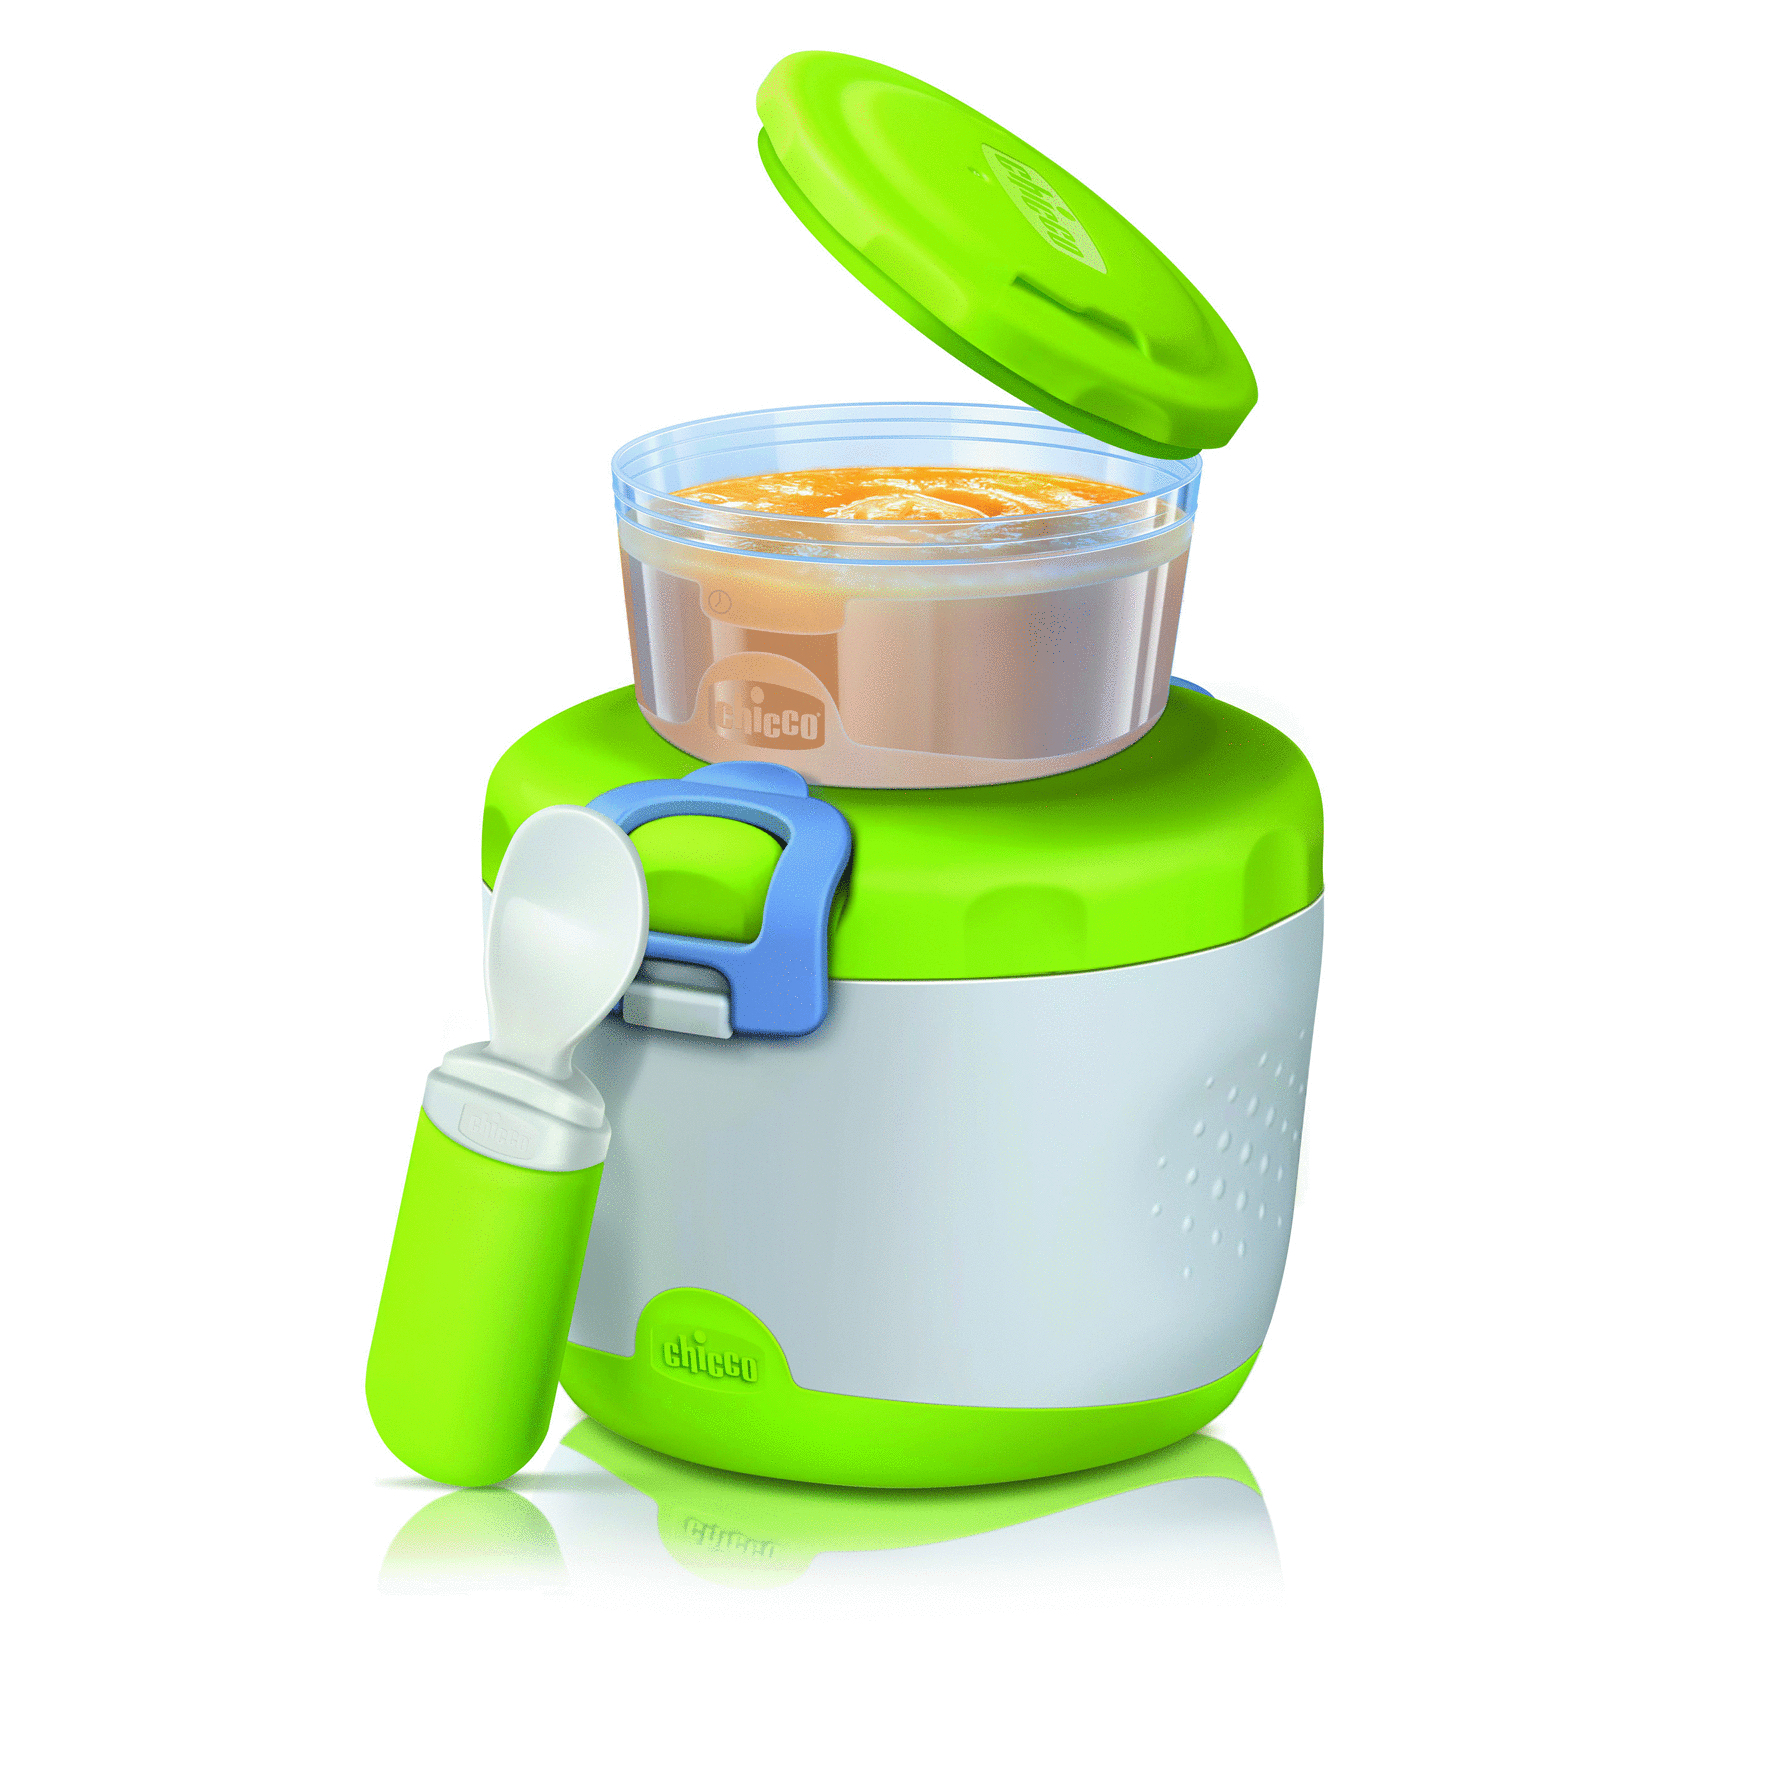 Chicco Easy Meal Insulating Container For Baby Food System 6m Buy Soft Silicone Spoon Green Up